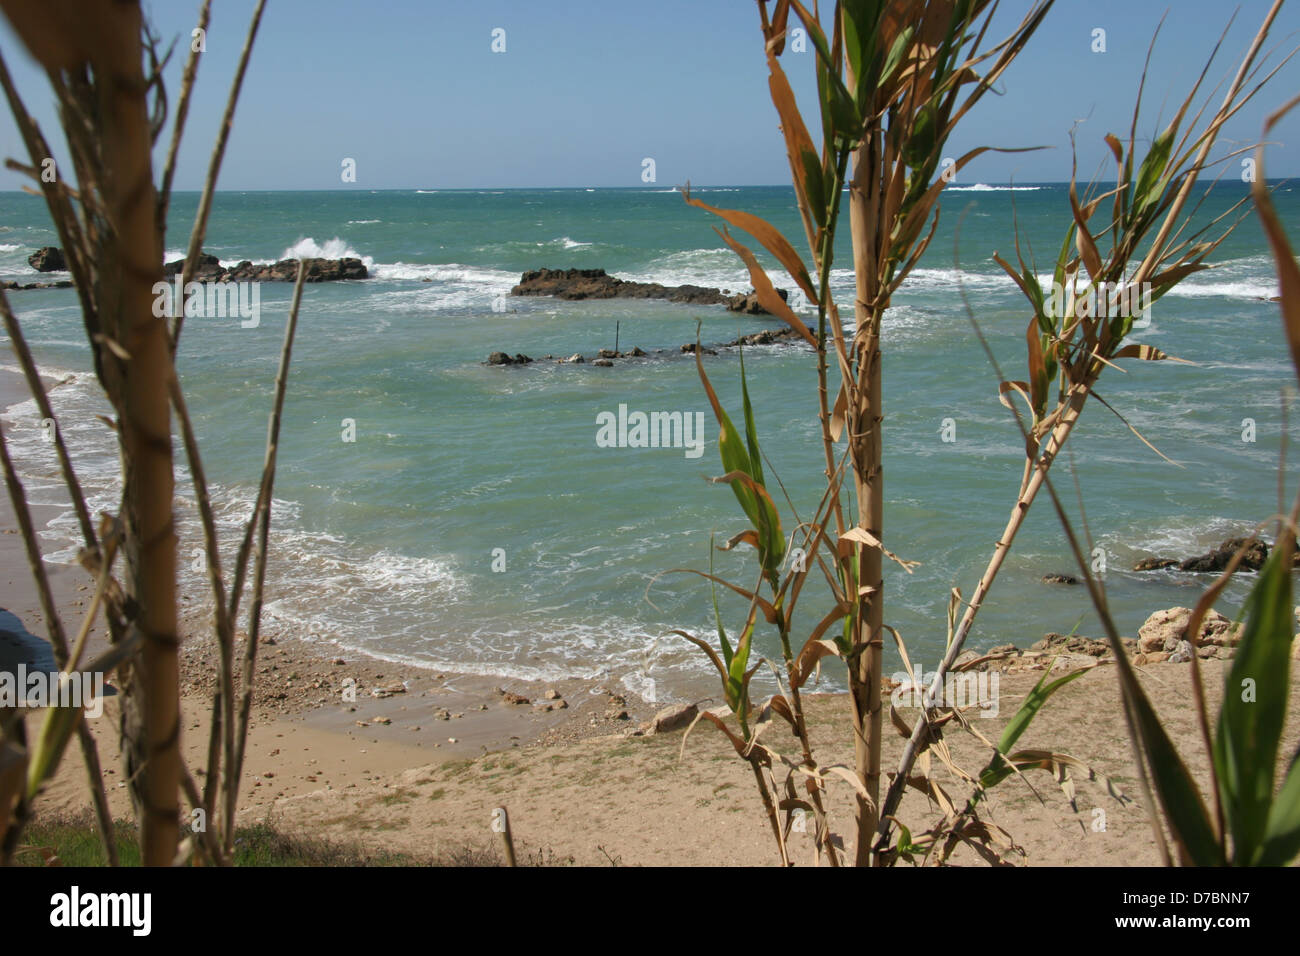 the seaside of achzibland, western galilee - Stock Image